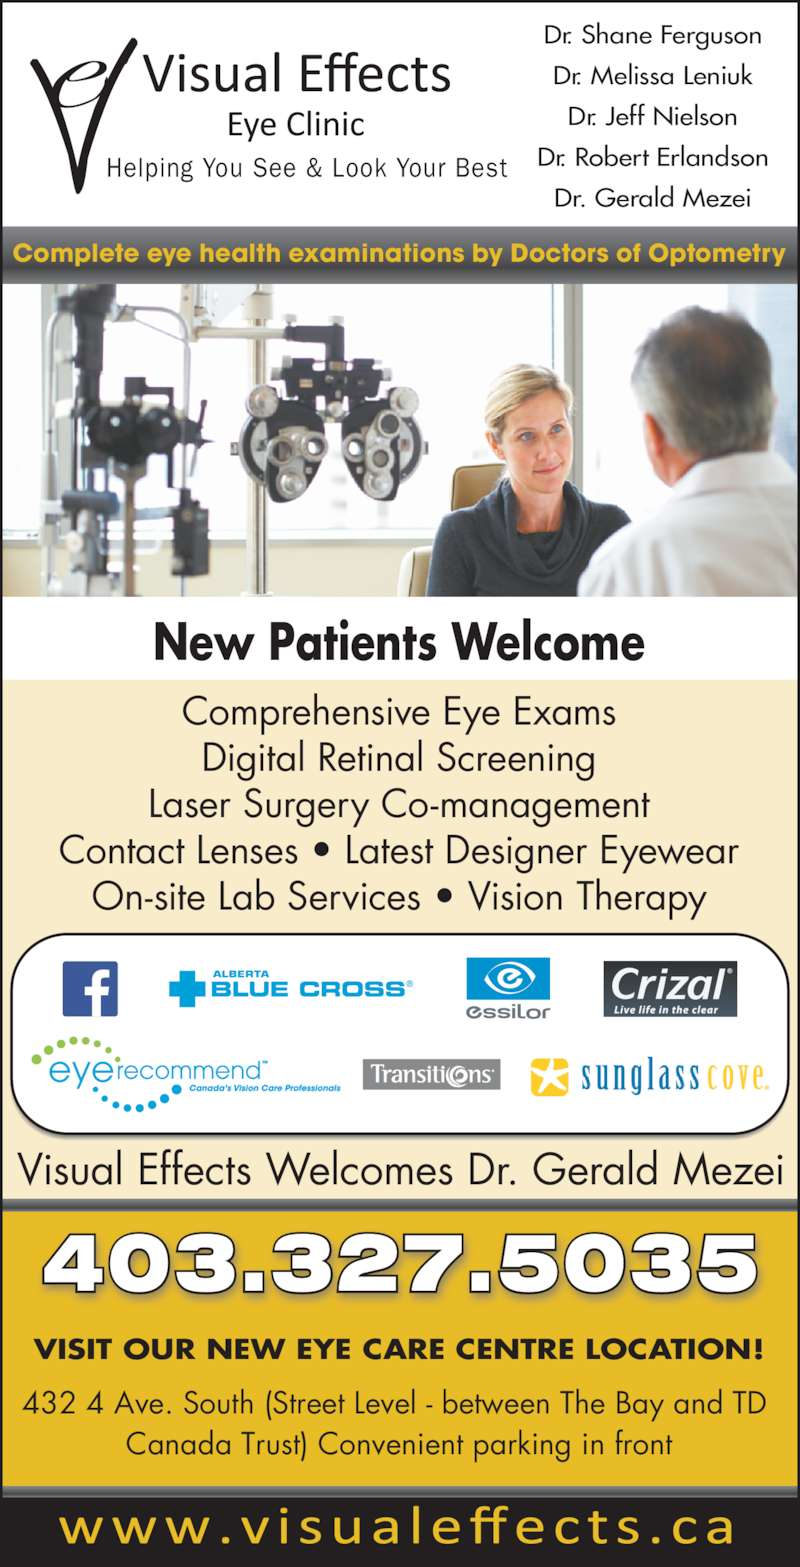 Visual Effects (403-327-5035) - Display Ad - Dr. Gerald Mezei Helping You See & Look Your Best Complete eye health examinations by Doctors of Optometry Comprehensive Eye Exams Digital Retinal Screening Laser Surgery Co-management Contact Lenses ? Latest Designer Eyewear On-site Lab Services ? Vision Therapy Visual Effects Welcomes Dr. Gerald Mezei New Patients Welcome 403.327.5035 VISIT OUR NEW EYE CARE CENTRE LOCATION! 432 4 Ave. South (Street Level - between The Bay and TD  Canada Trust) Convenient parking in front Dr. Shane Ferguson Dr. Melissa Leniuk Dr. Jeff Nielson Dr. Robert Erlandson